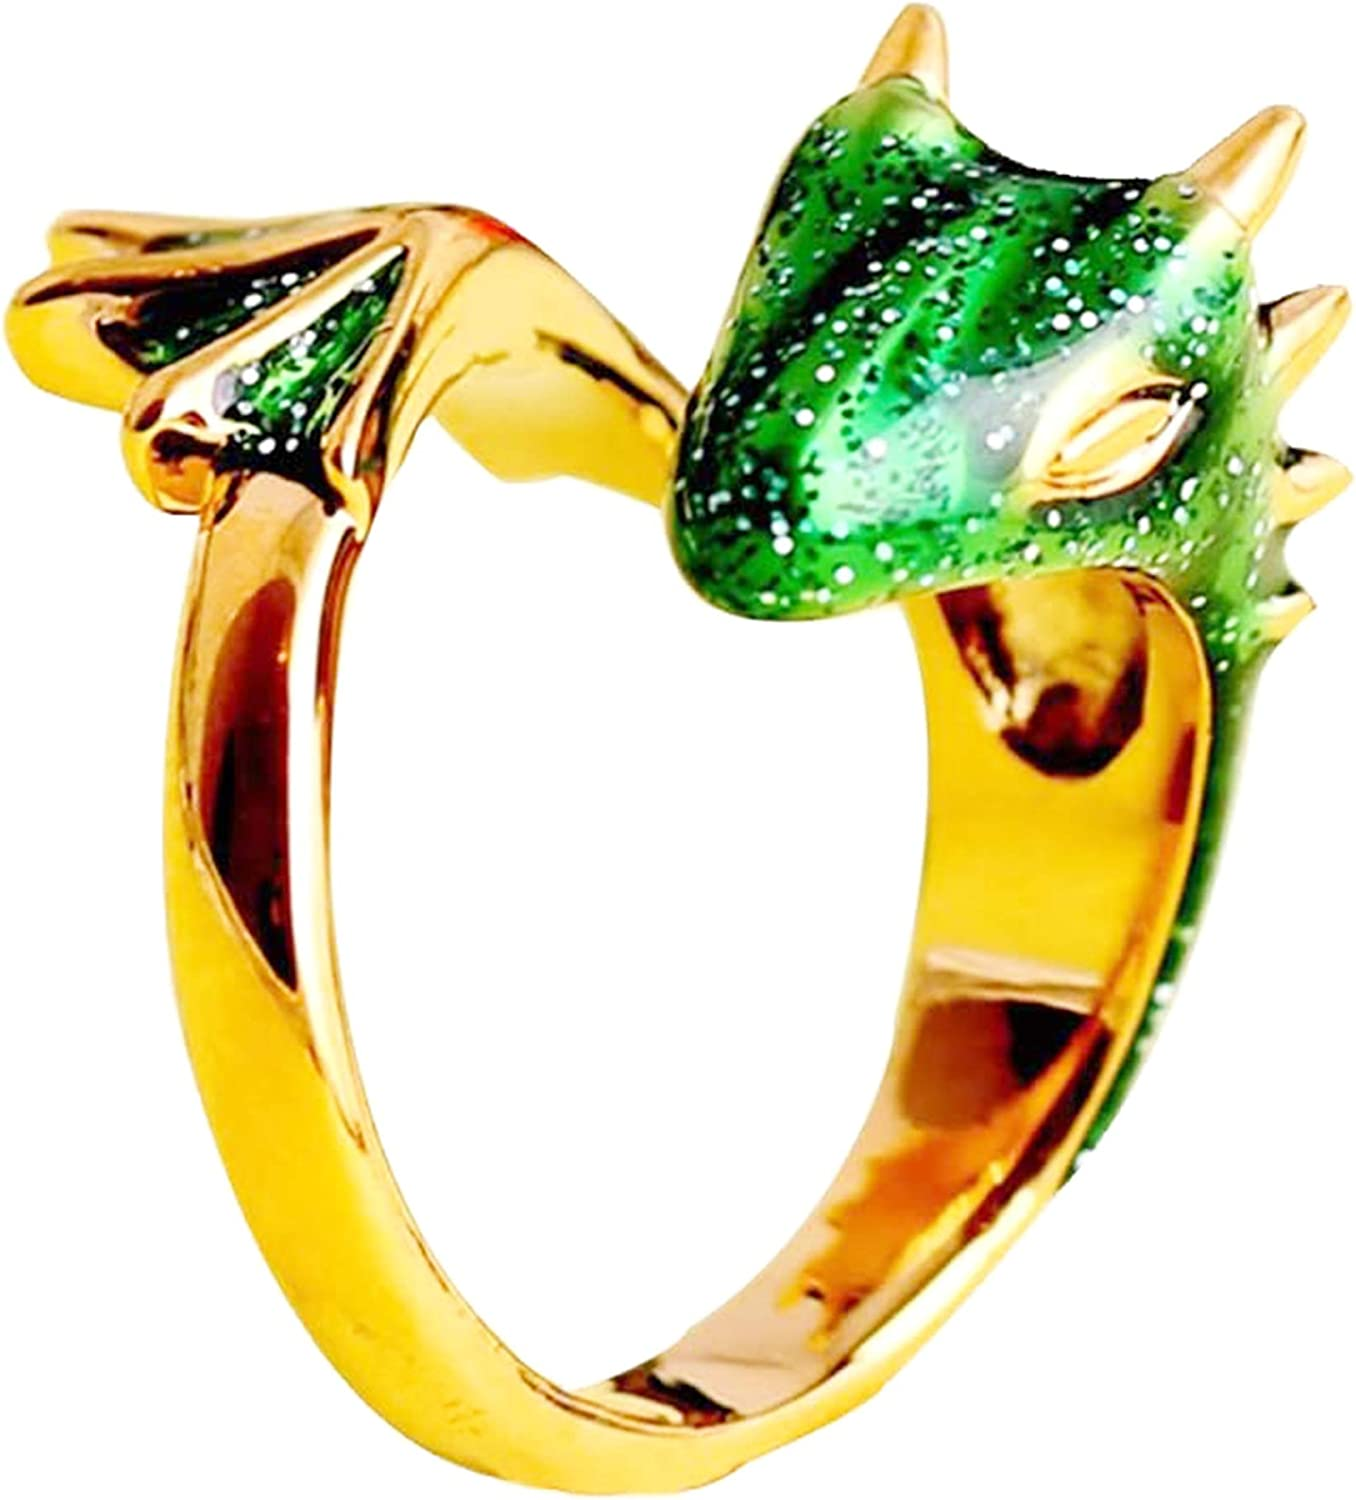 2021 New Gold Topaz Dragon Ring Lucky Fingere Pet, Free-size (adjustable band)